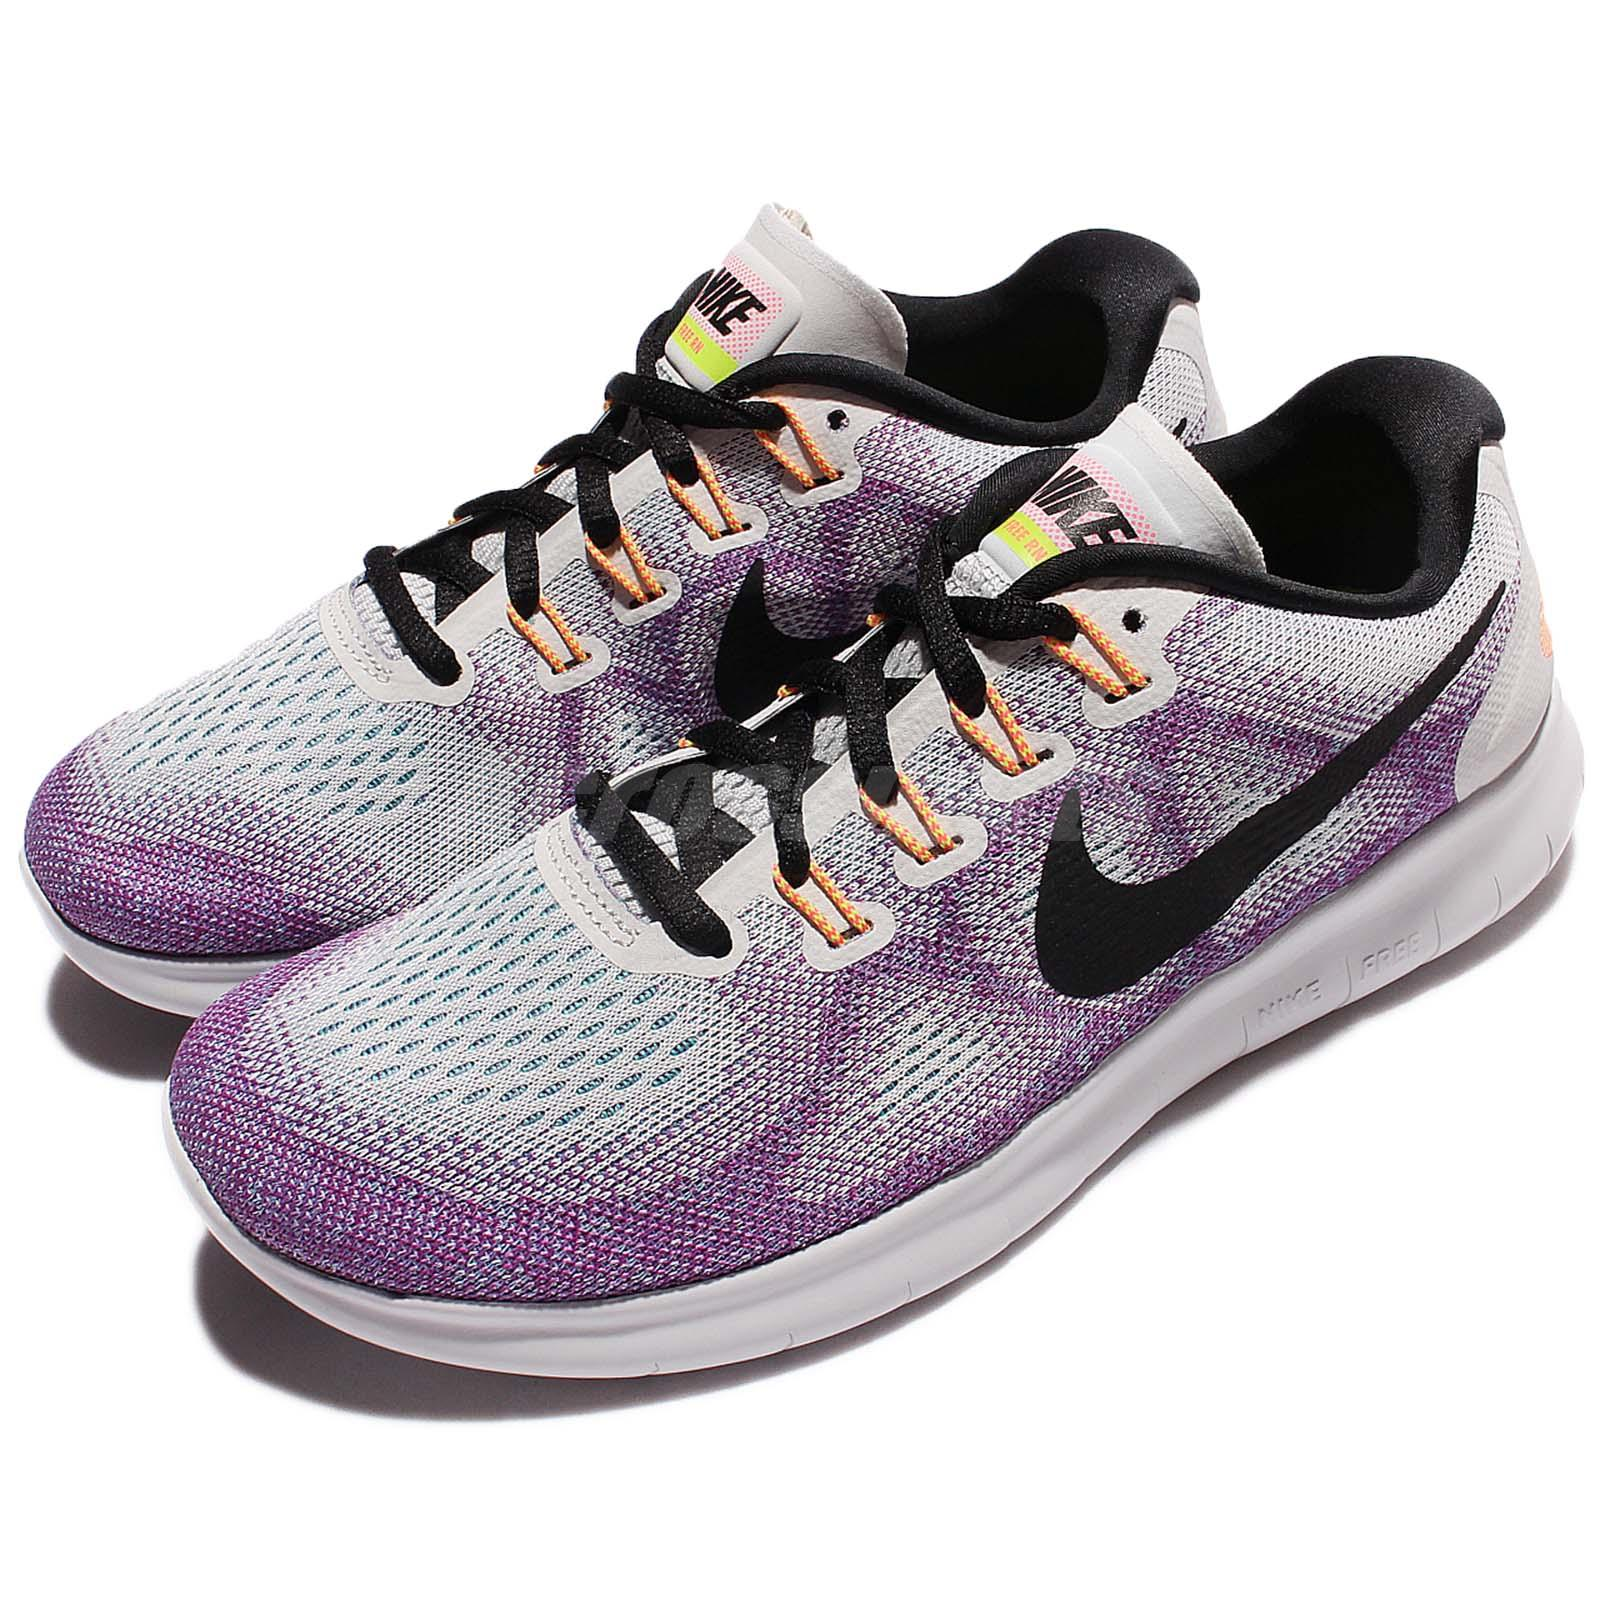 reputable site 67b3c a8f01 nike free run 3 womens hot punch size 8 Nike LeBron Soldier XII SFG ...